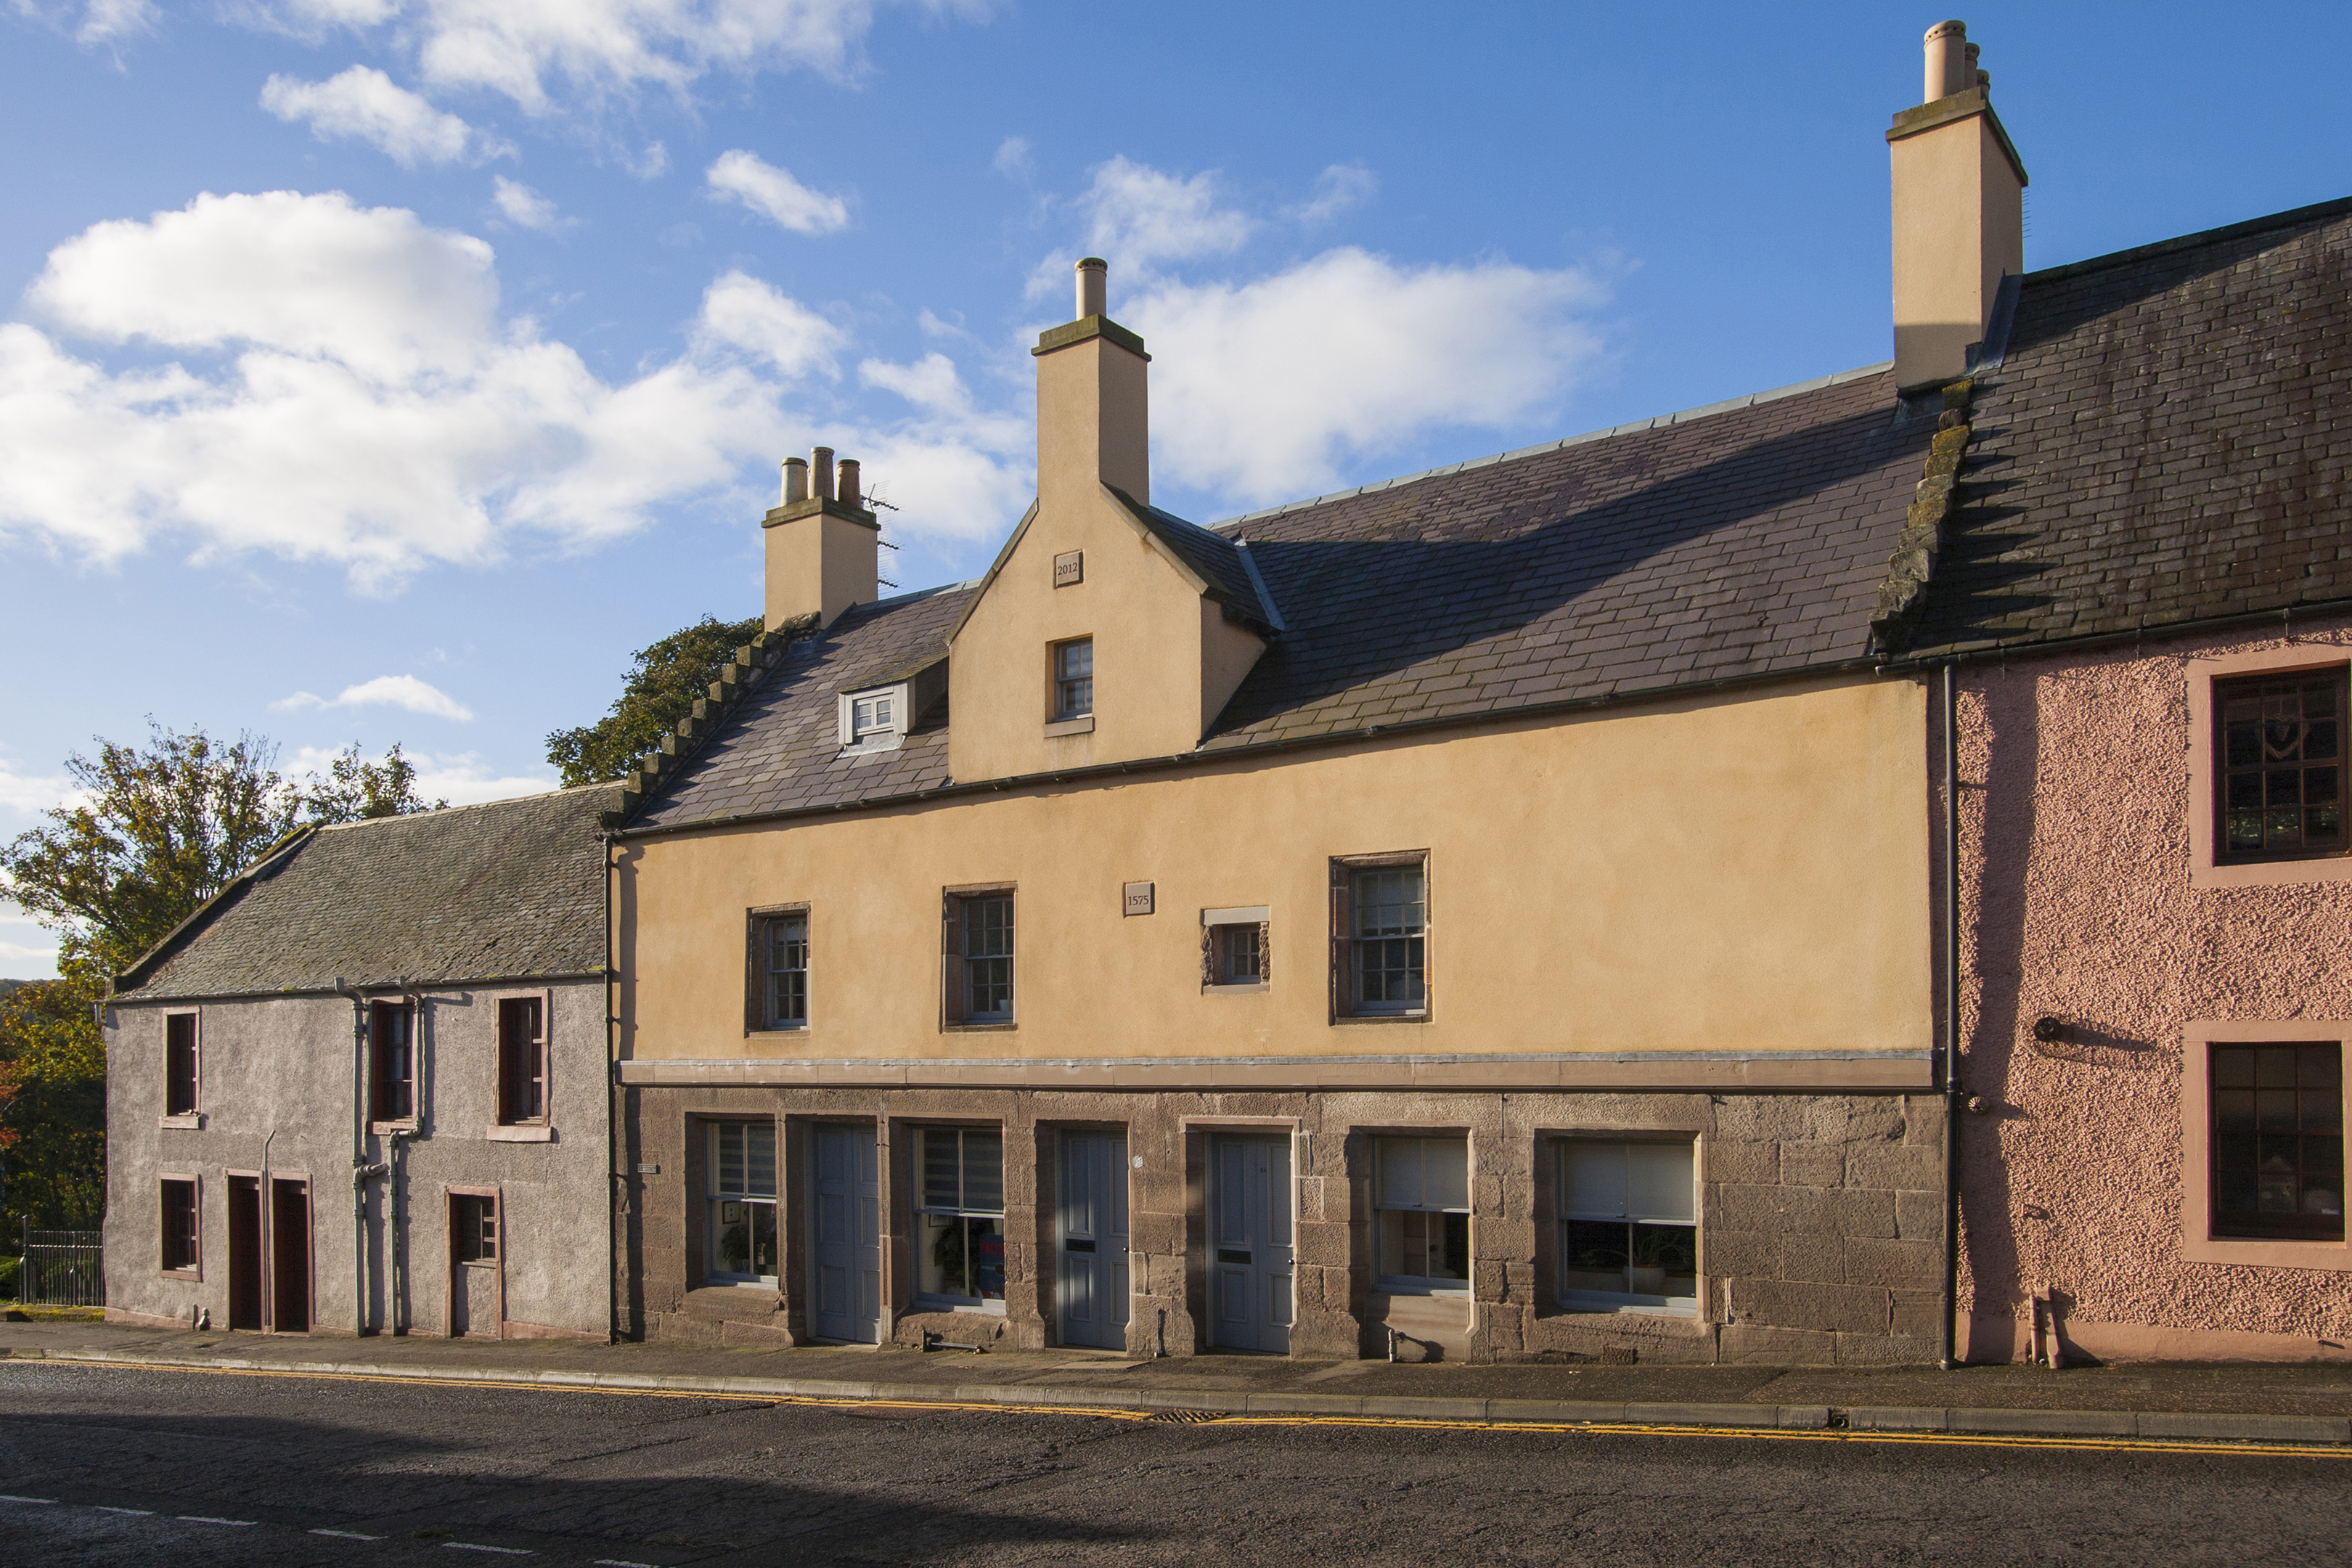 The 16th century Merchant's House was transformed after sitting derelict for decades